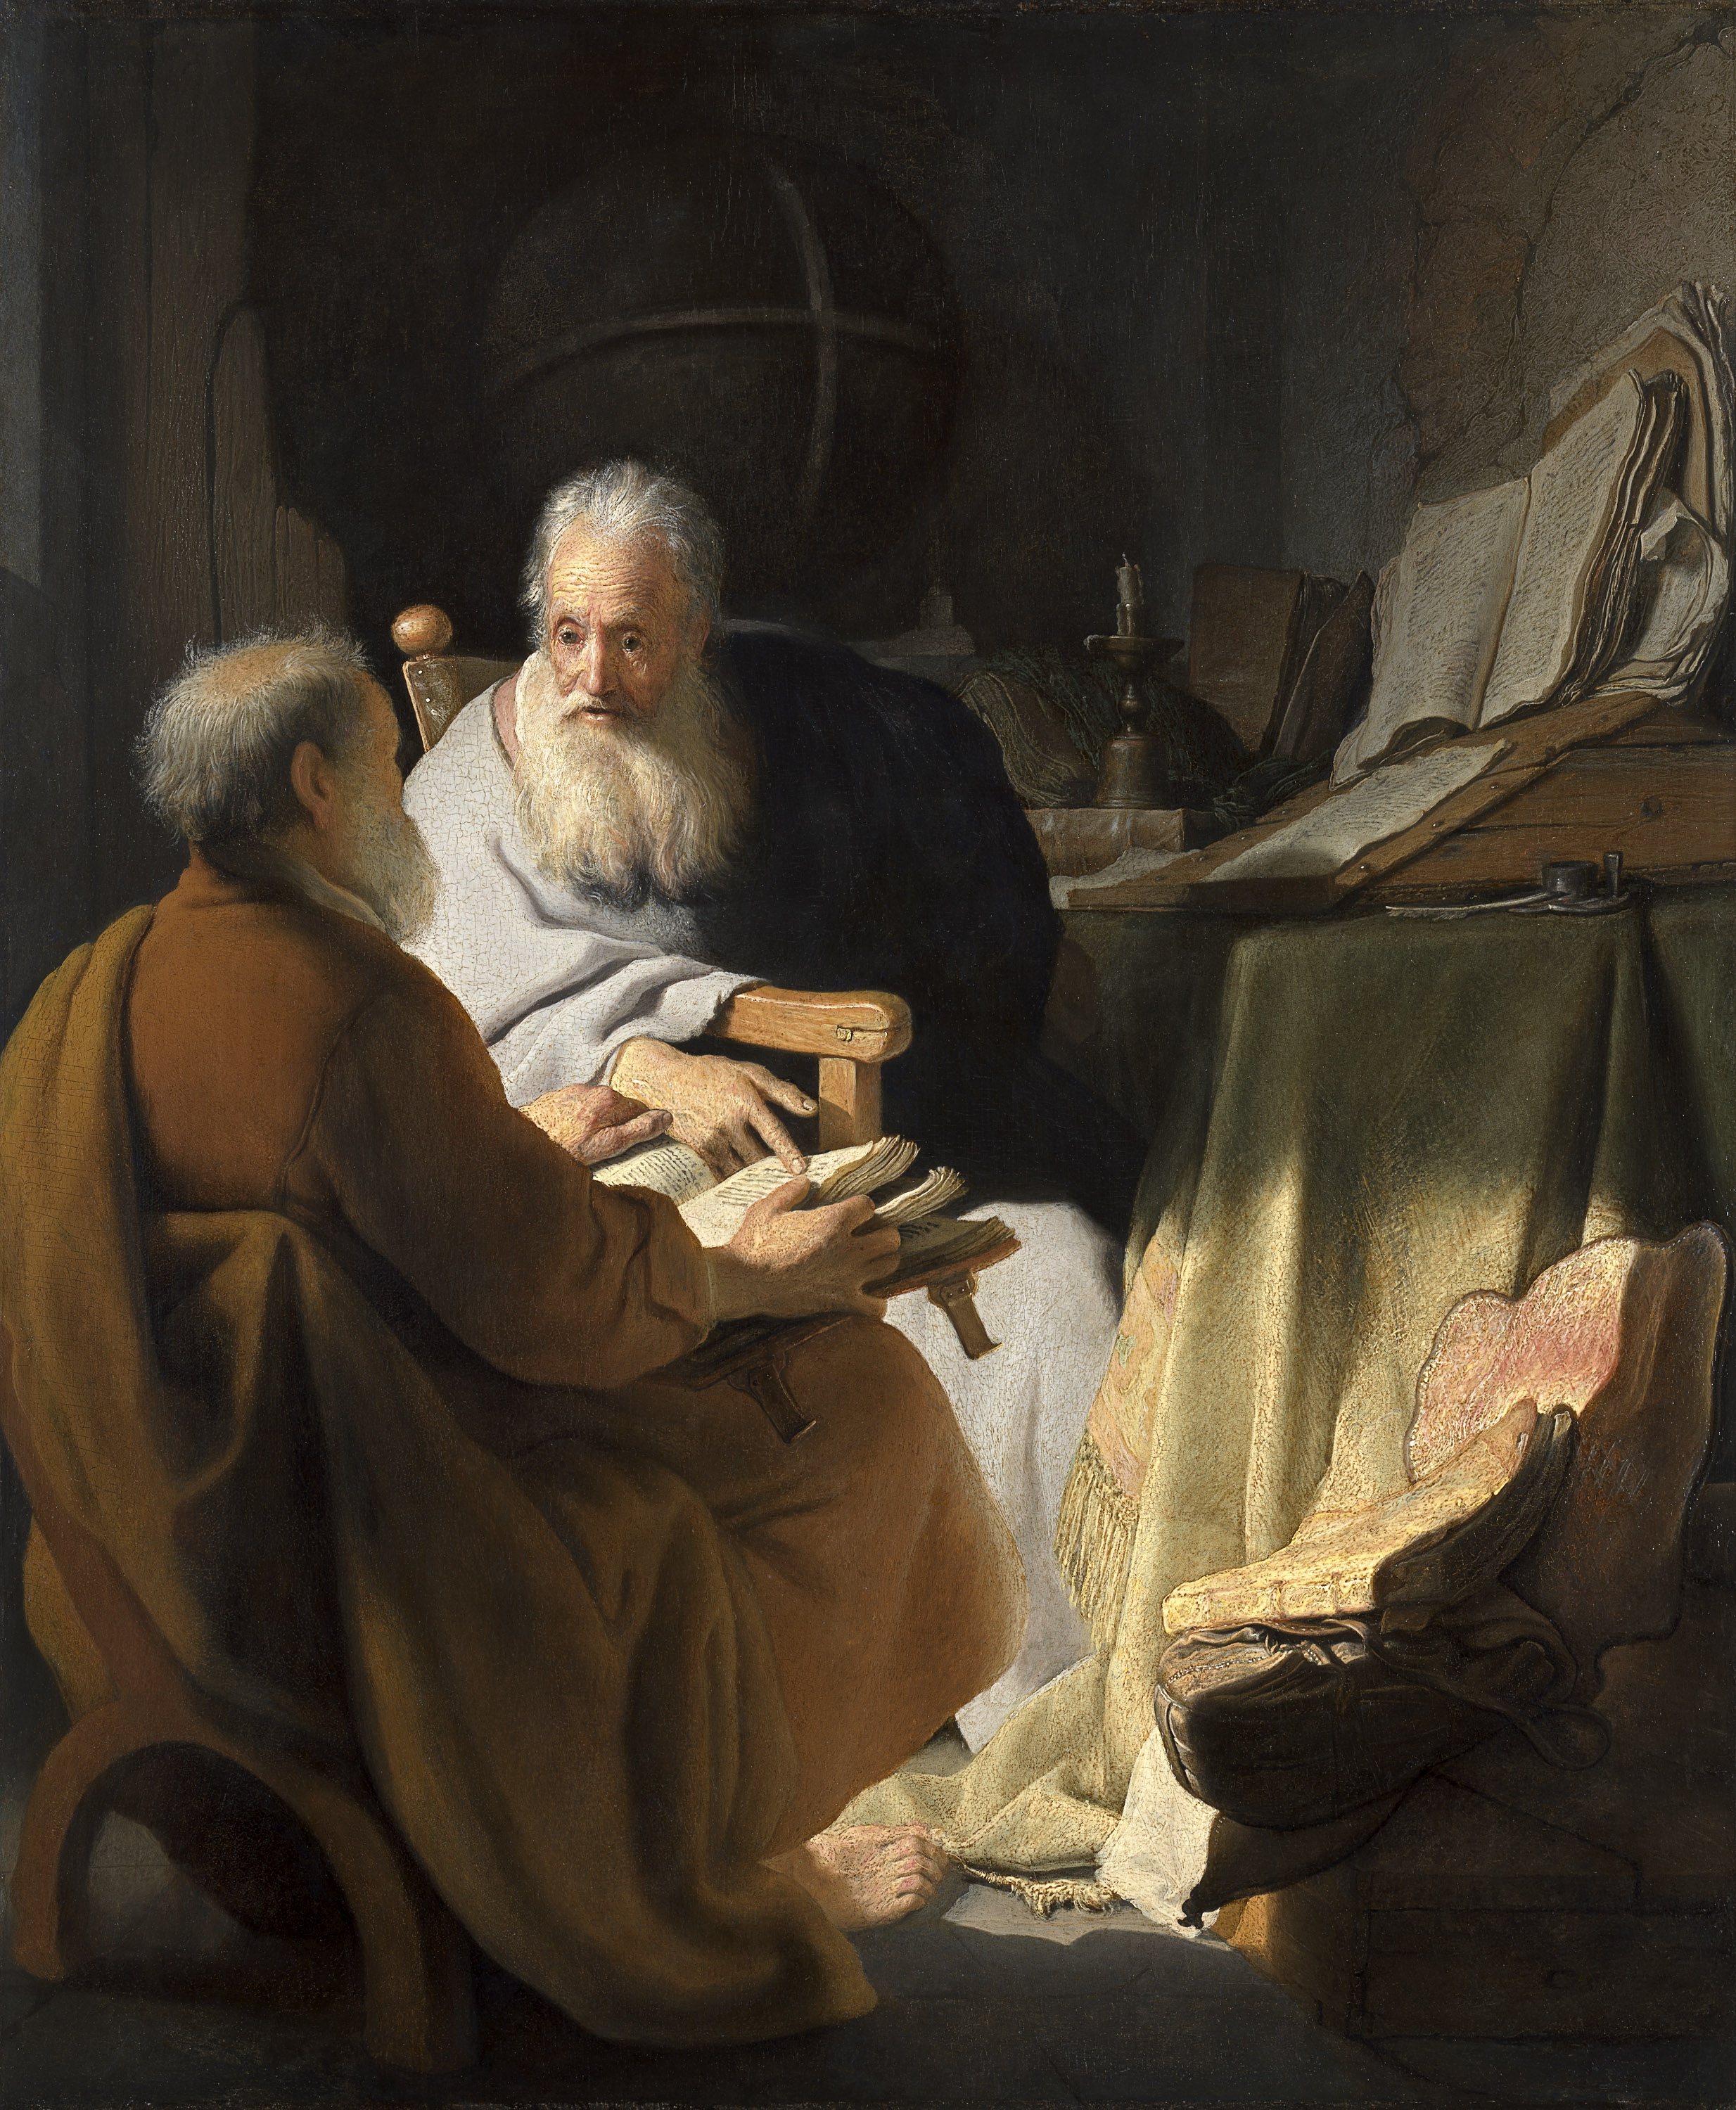 Painting of two men disputing